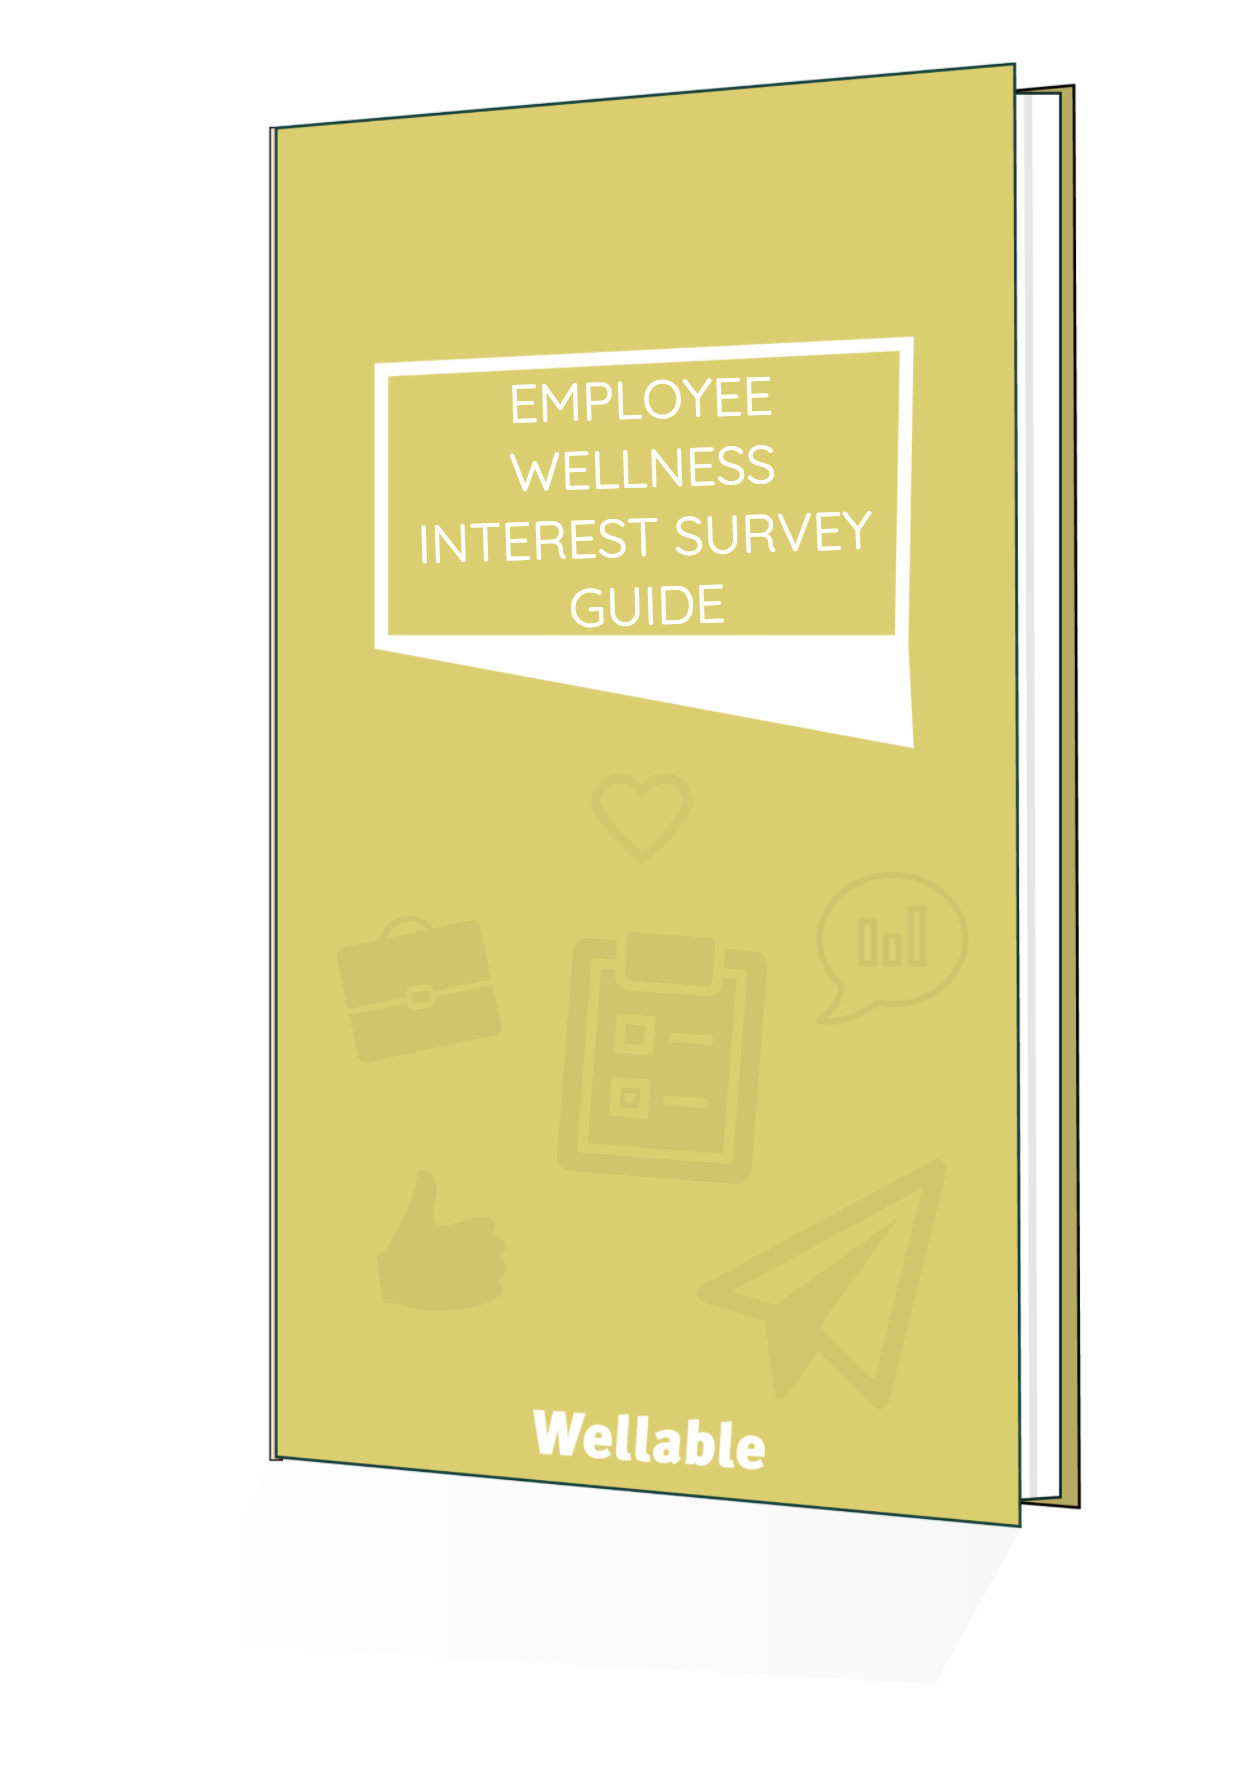 employee wellness survey template ebook cover.png